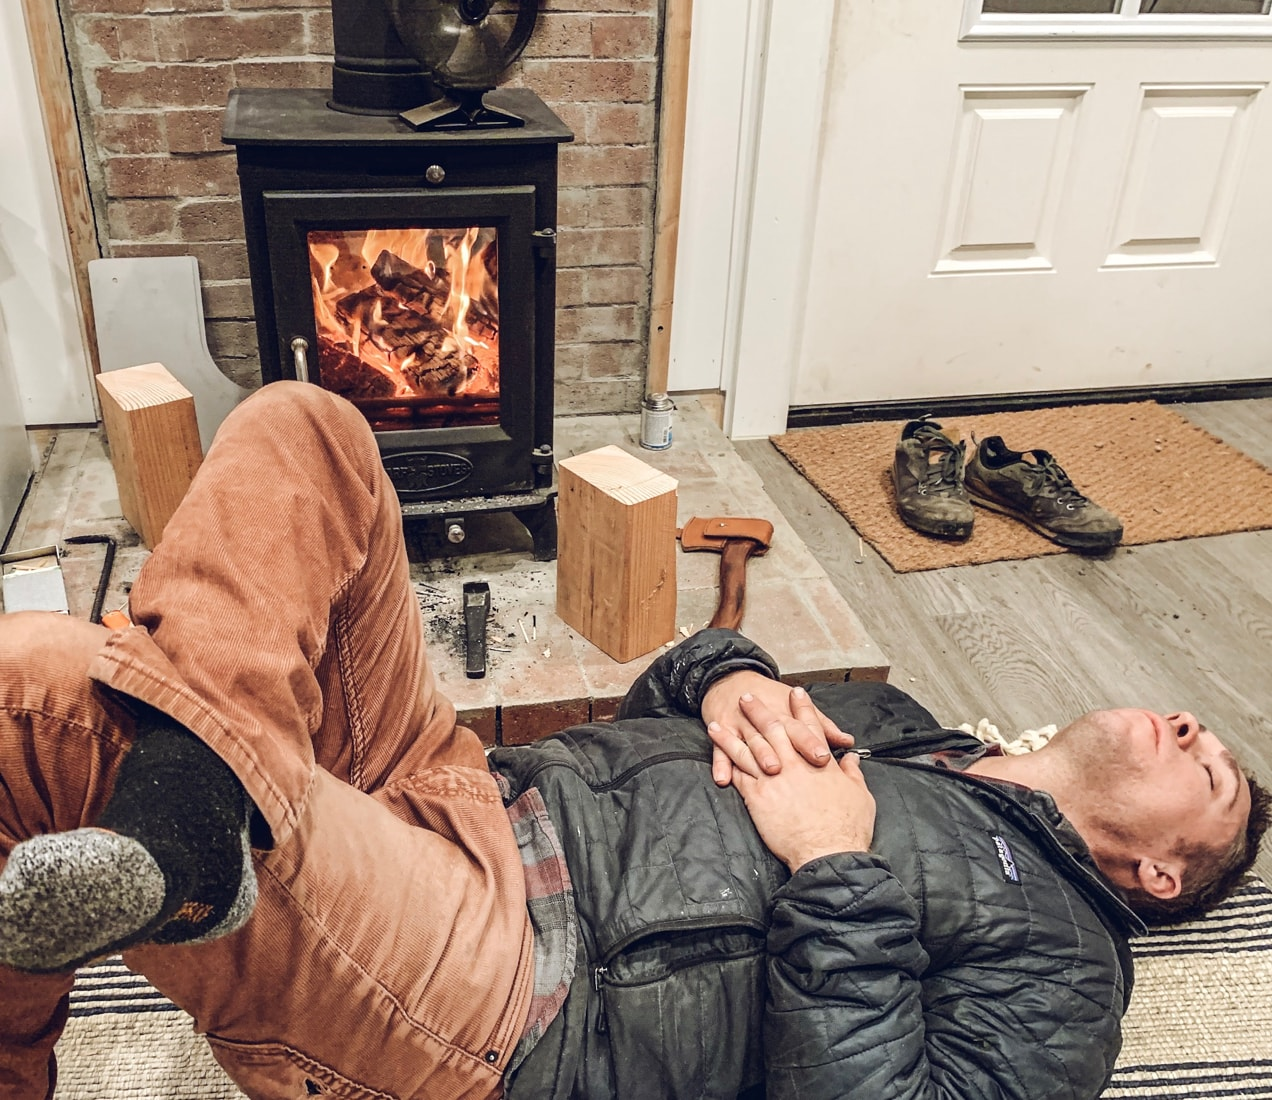 Taking a nap in front of a tiny wood stove